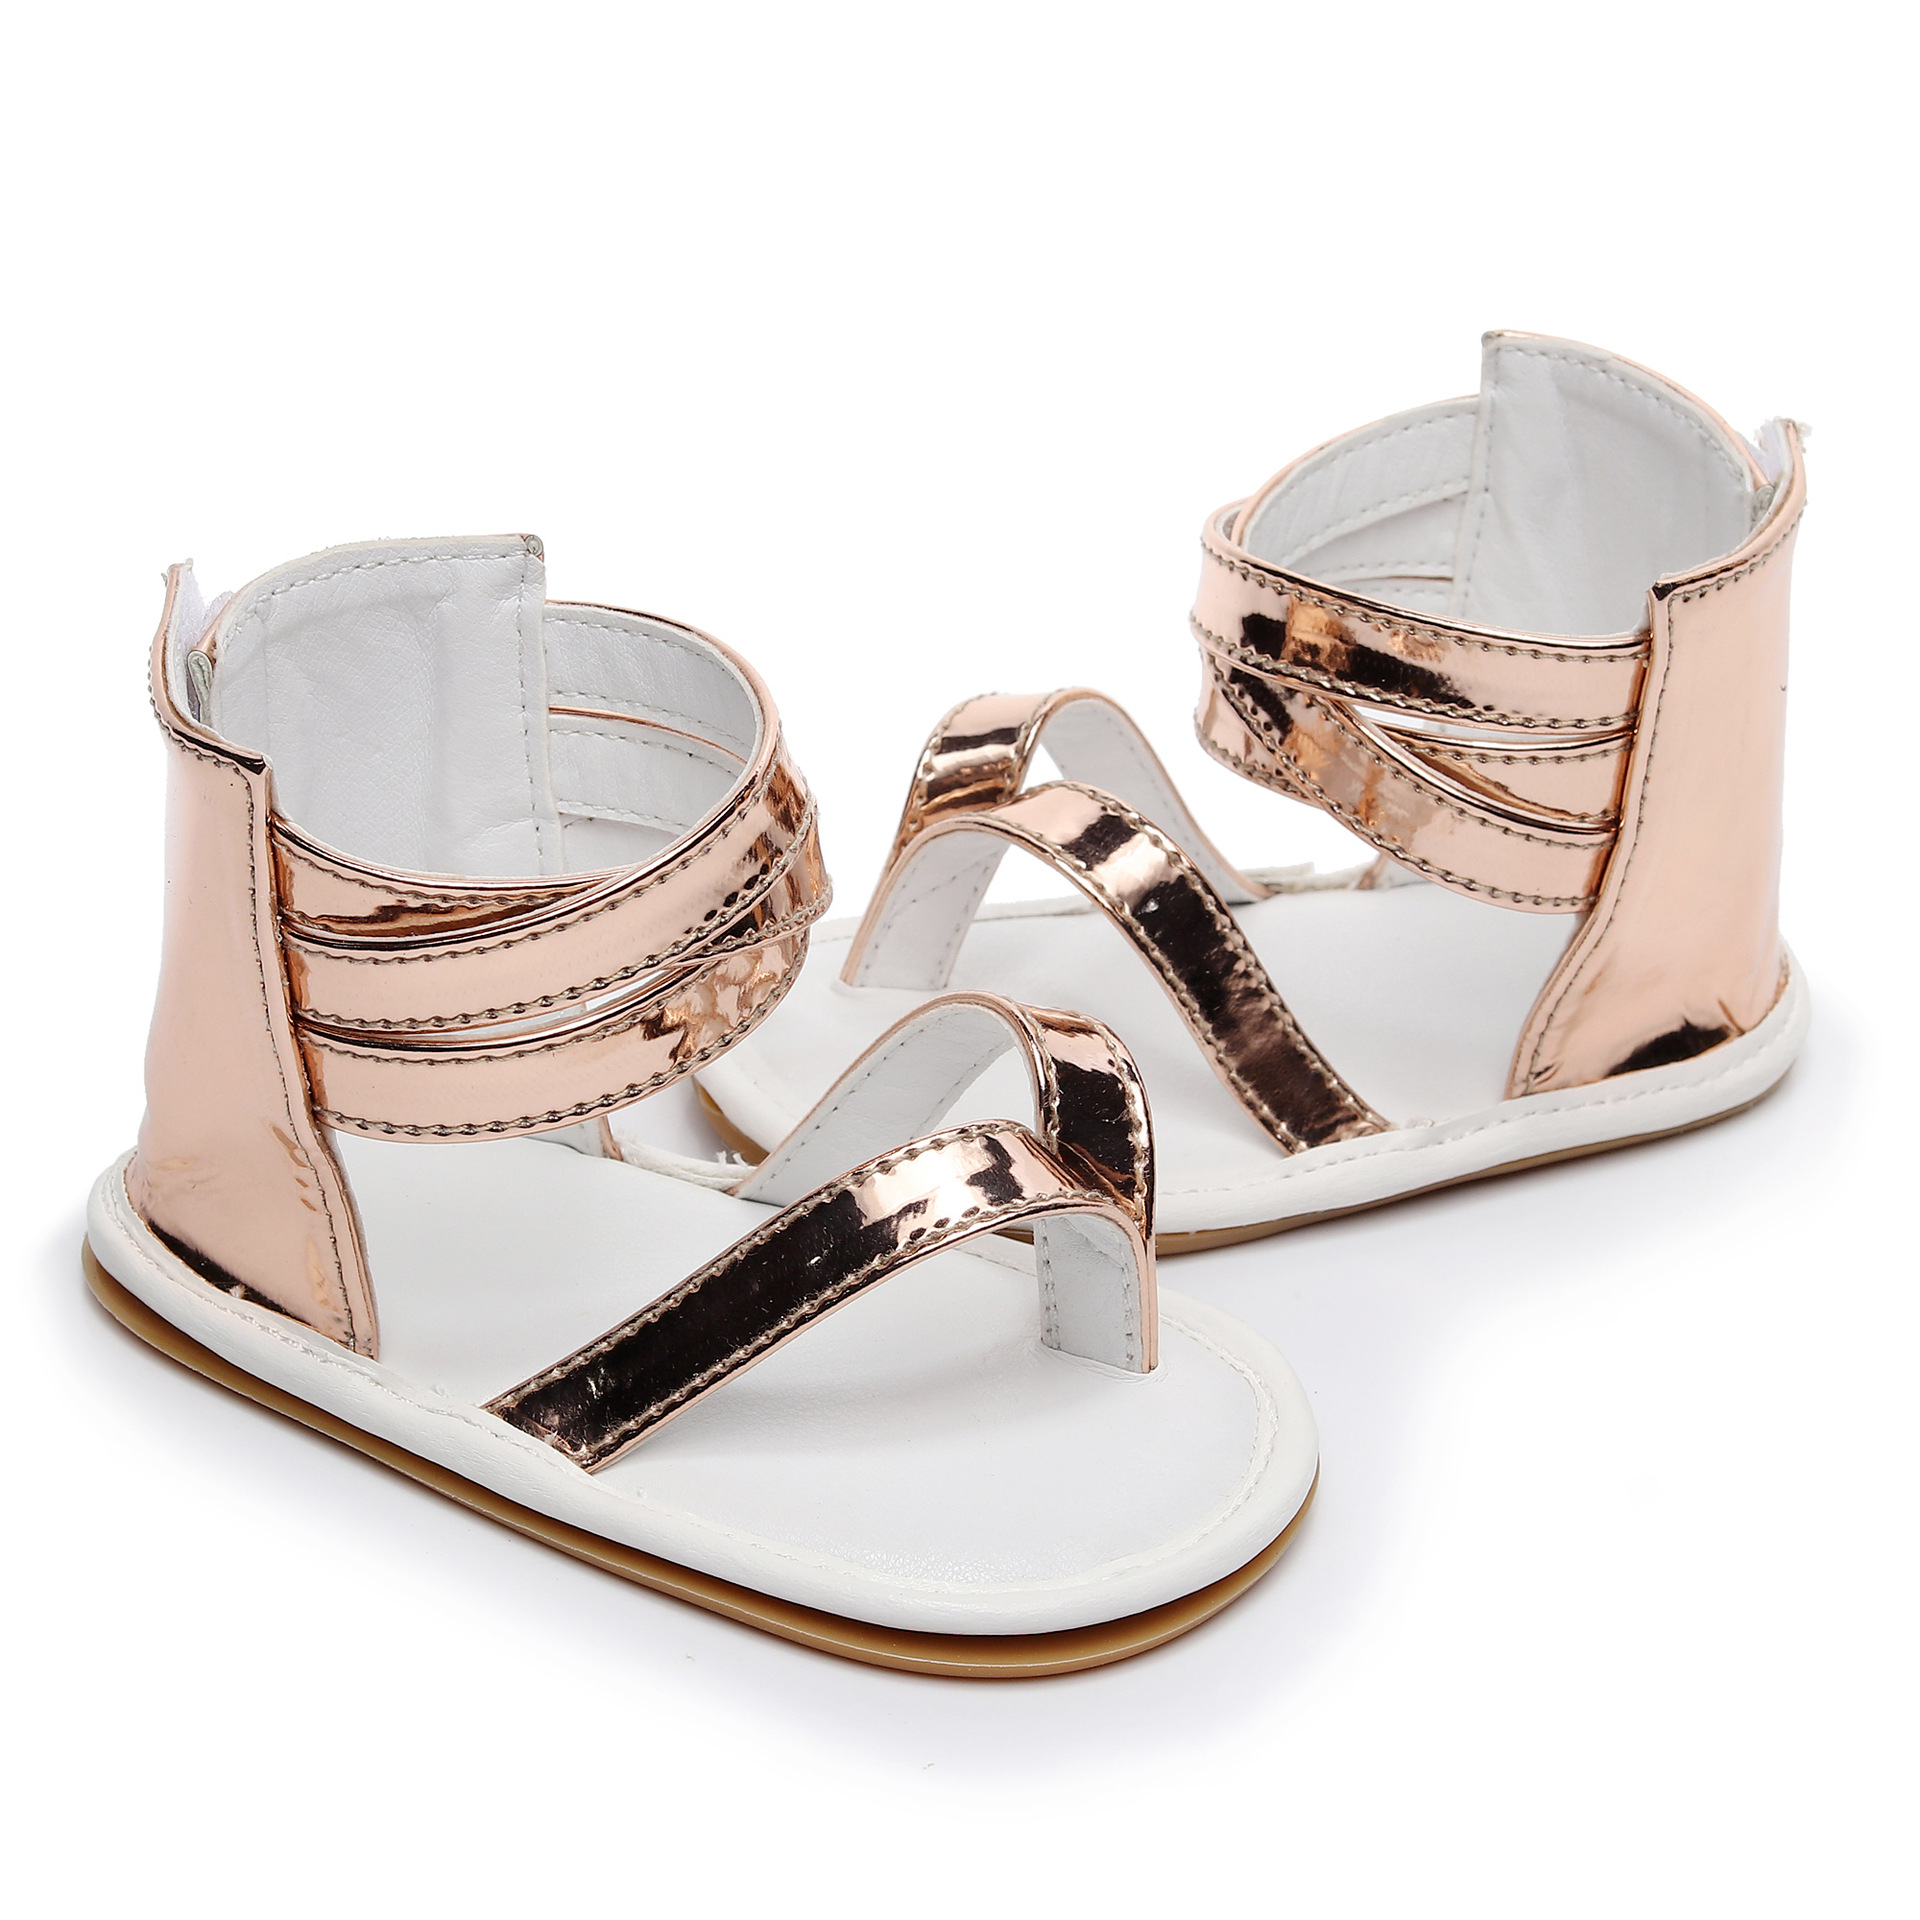 2019 Fashion Baby Sandals Summer Crib Moccasins Shoes Anti-slip Hard Sole Flip Flop Infant Baby Shoes 0-24 M